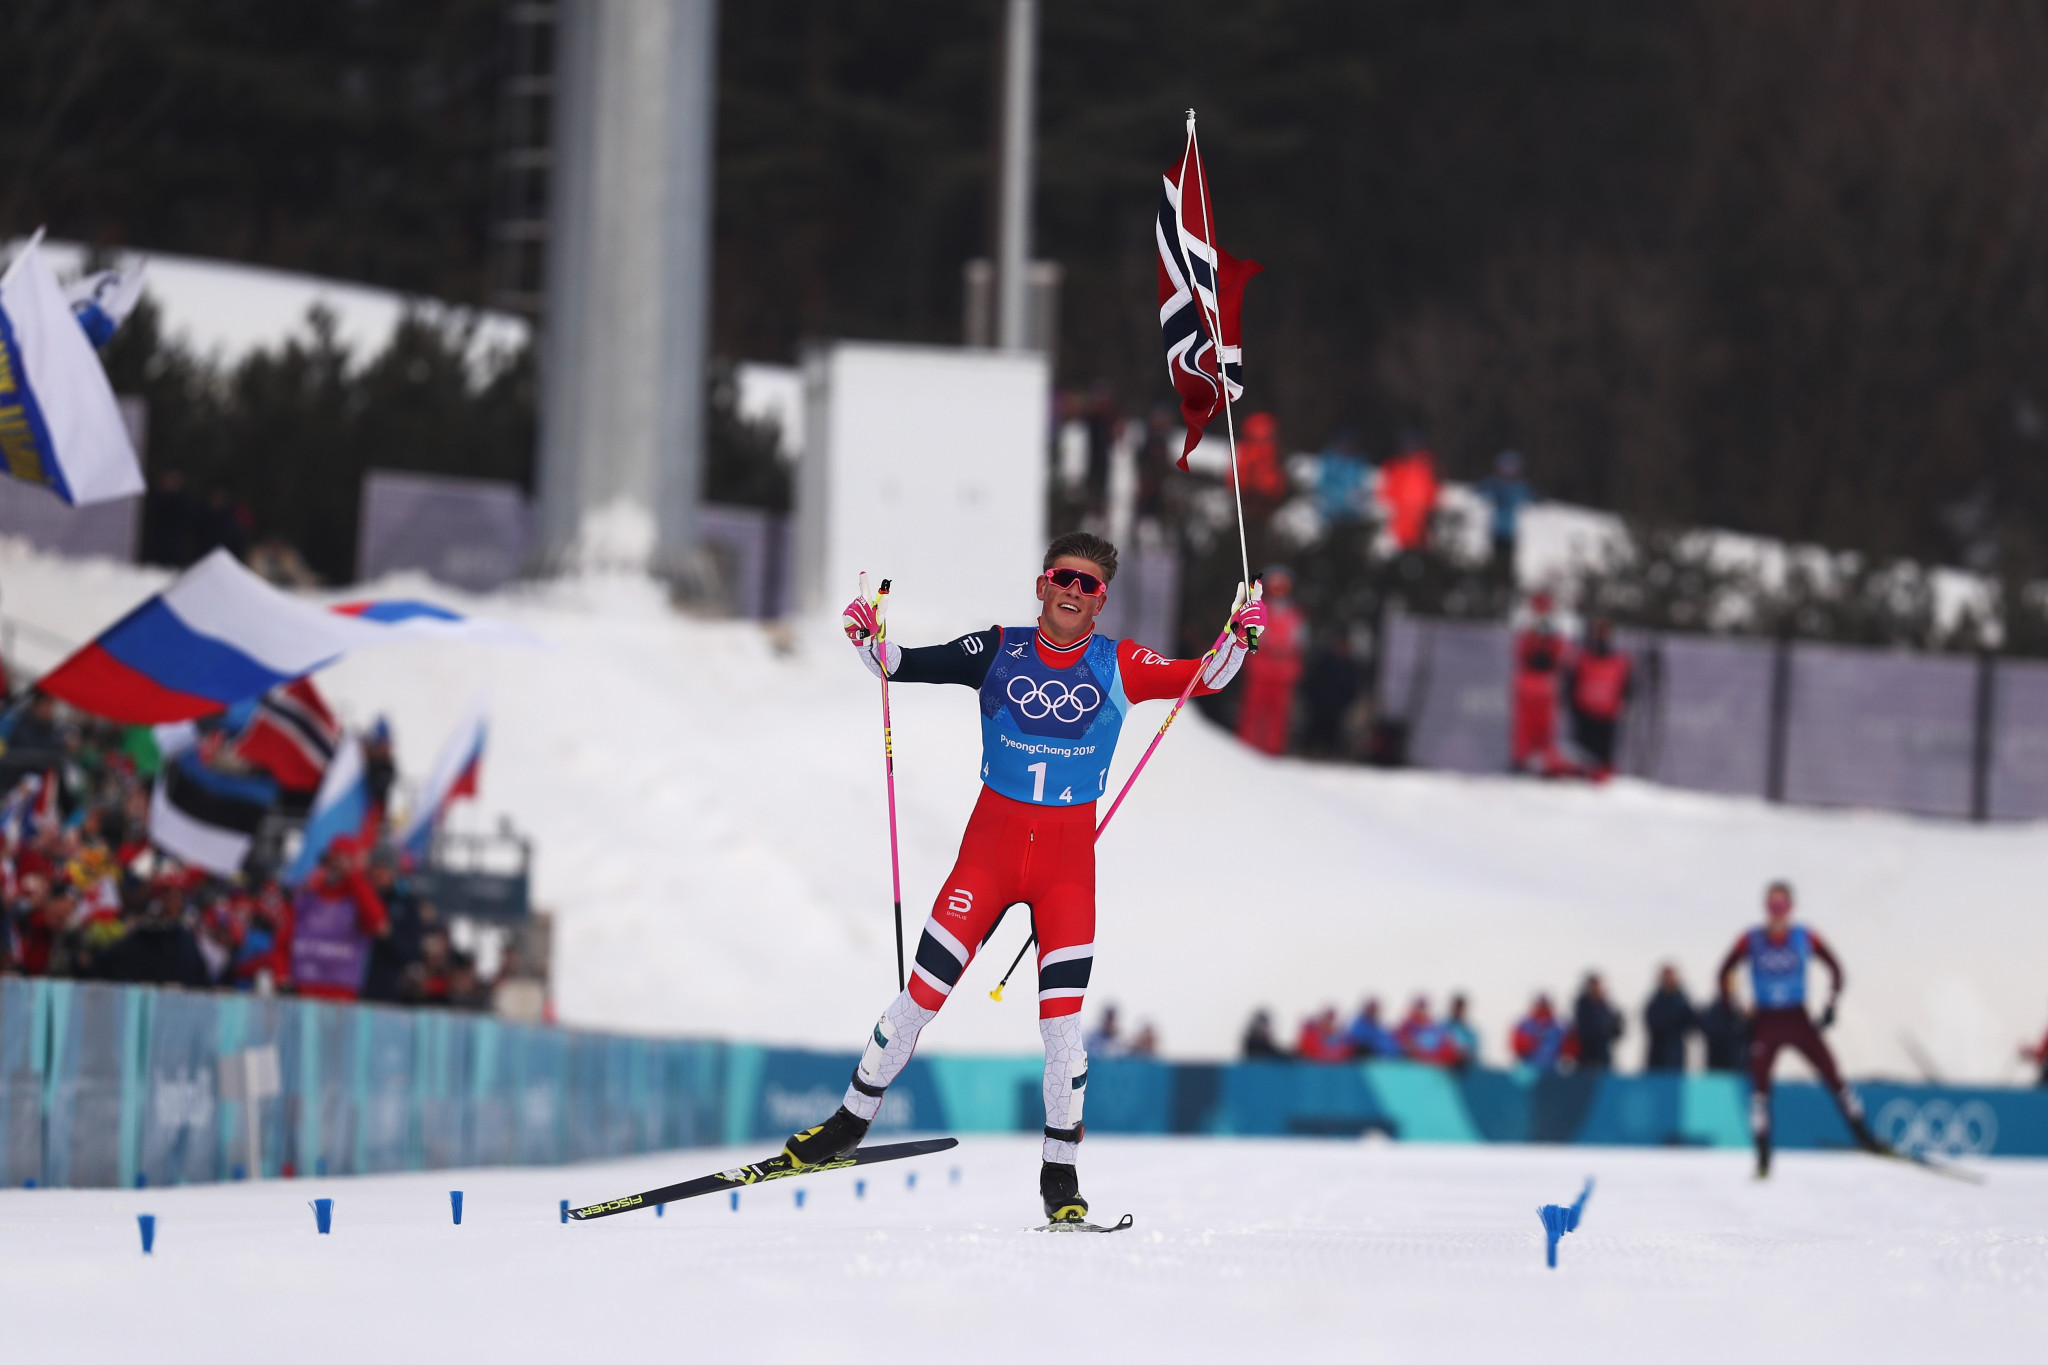 Norway win men's cross-country relay at Pyeongchang 2018 to move closer to historic achievement